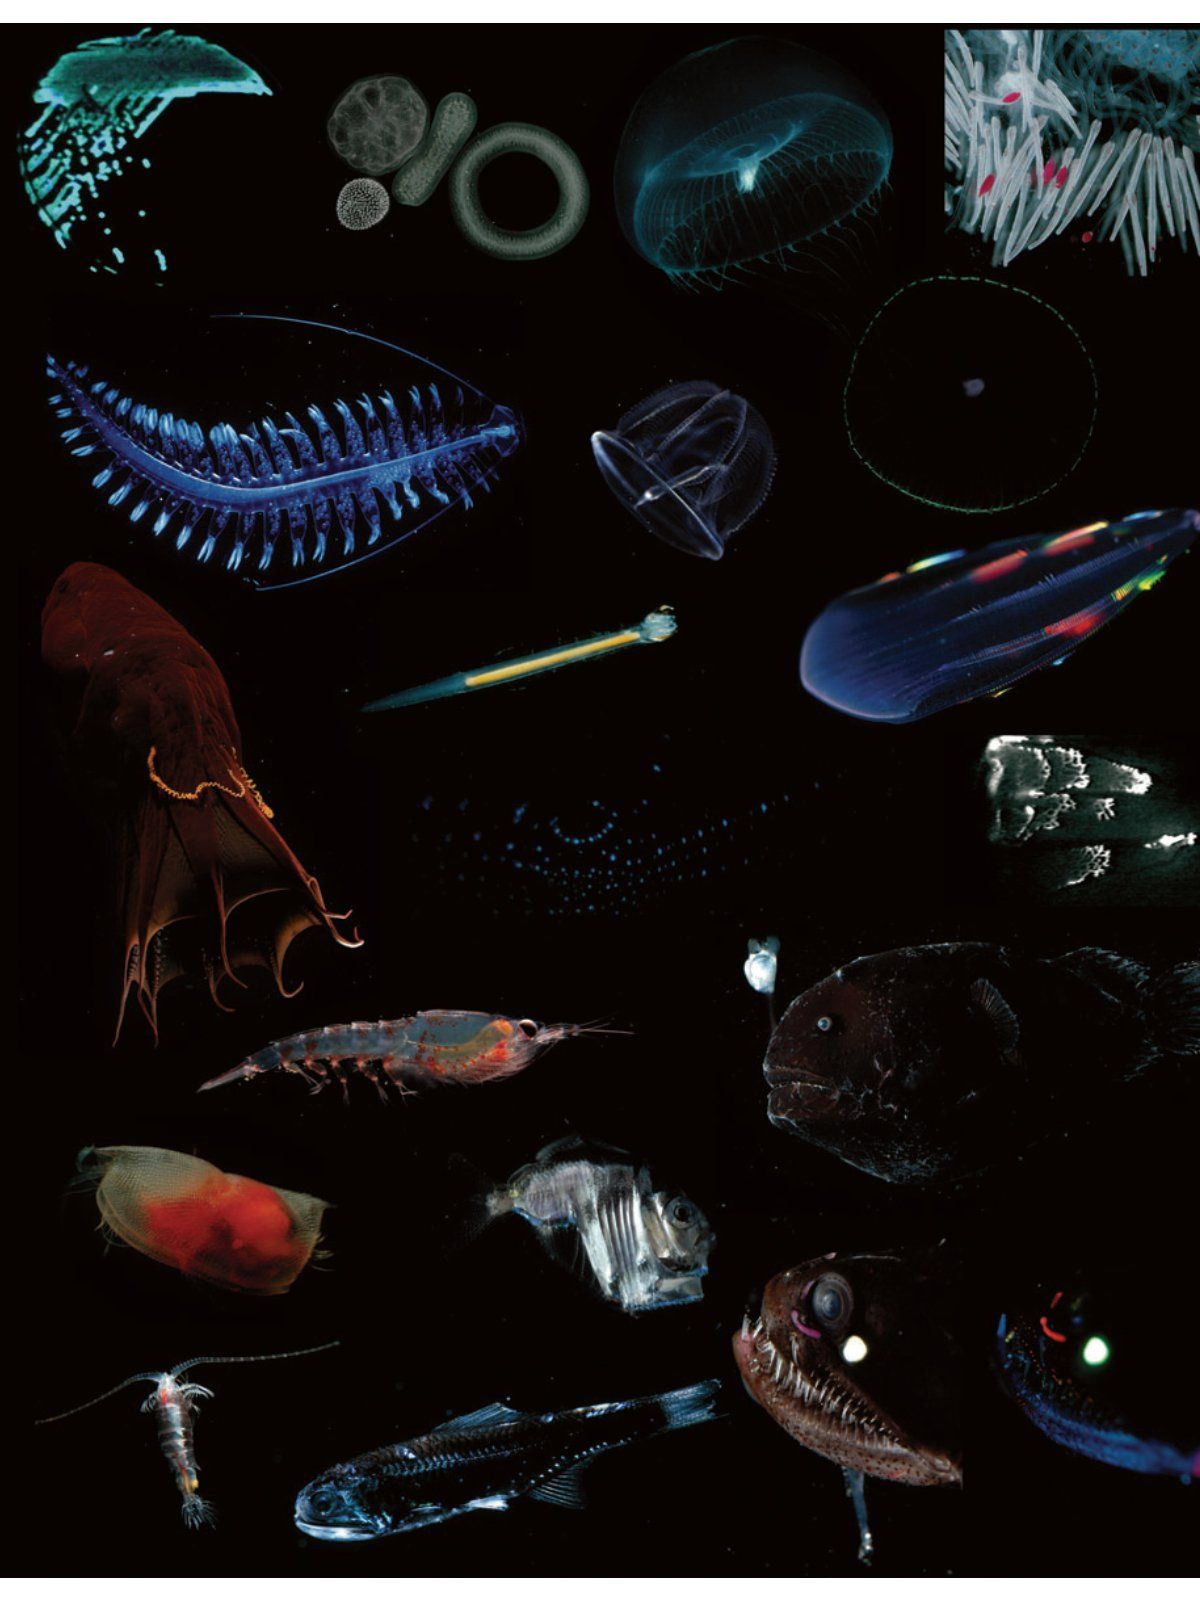 A Collection Of Bioluminesence Plankten And Fish With